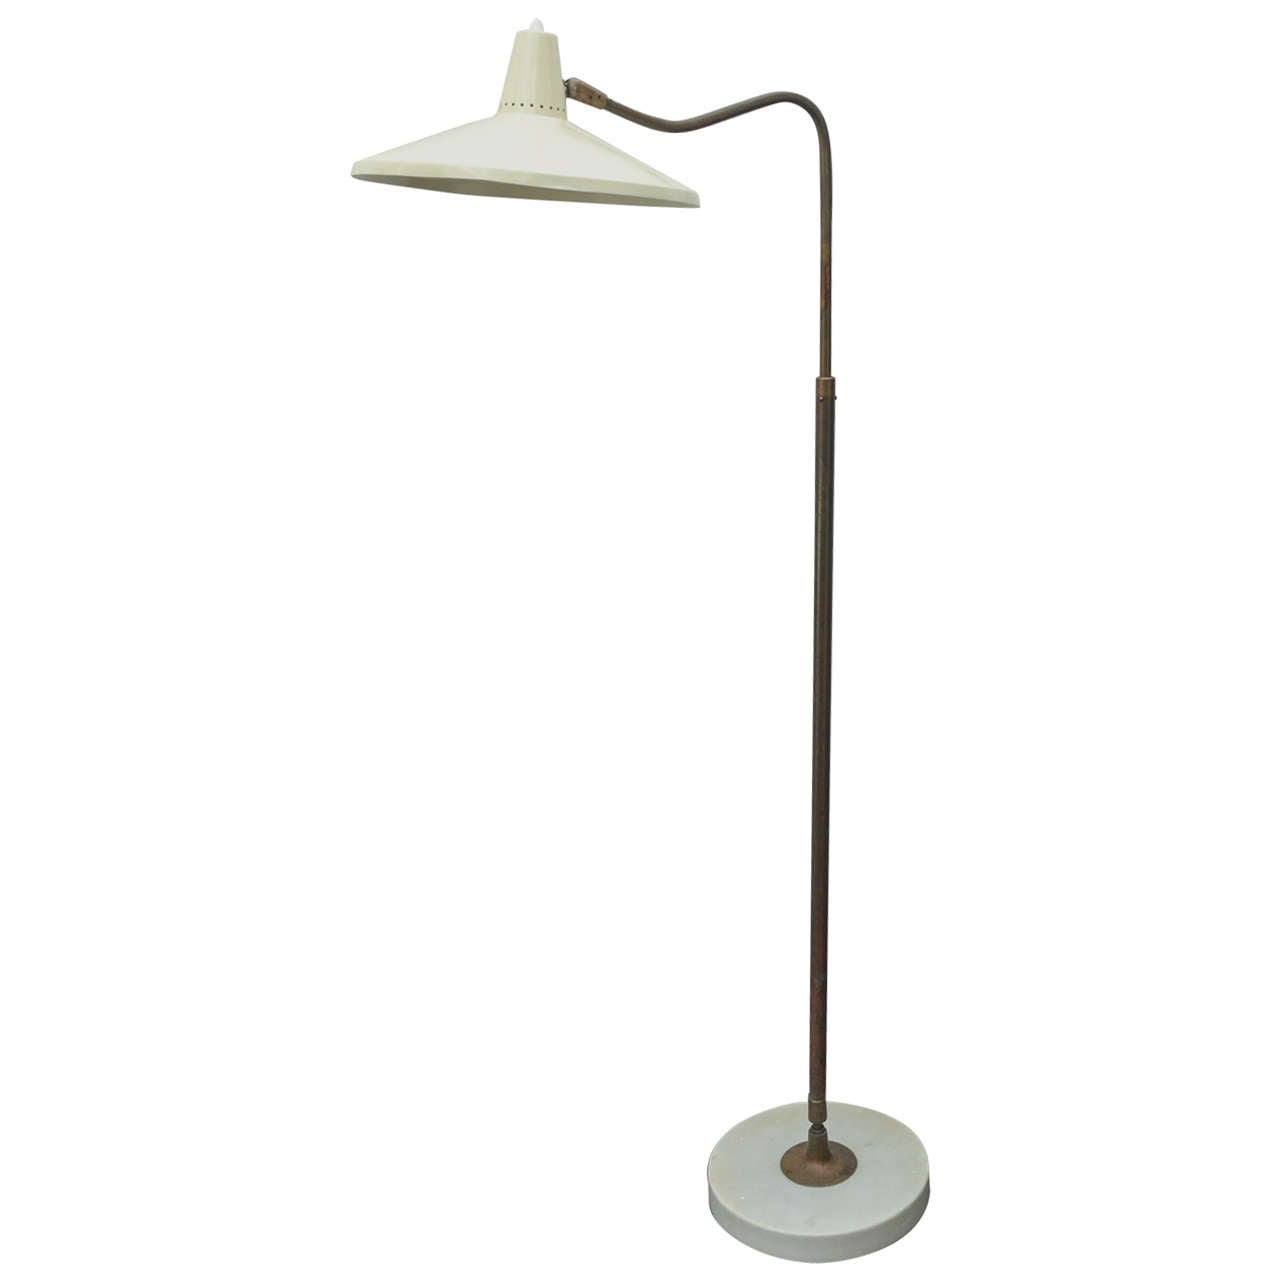 Adjustable Floor Lamp by Ostuni for O-Luce